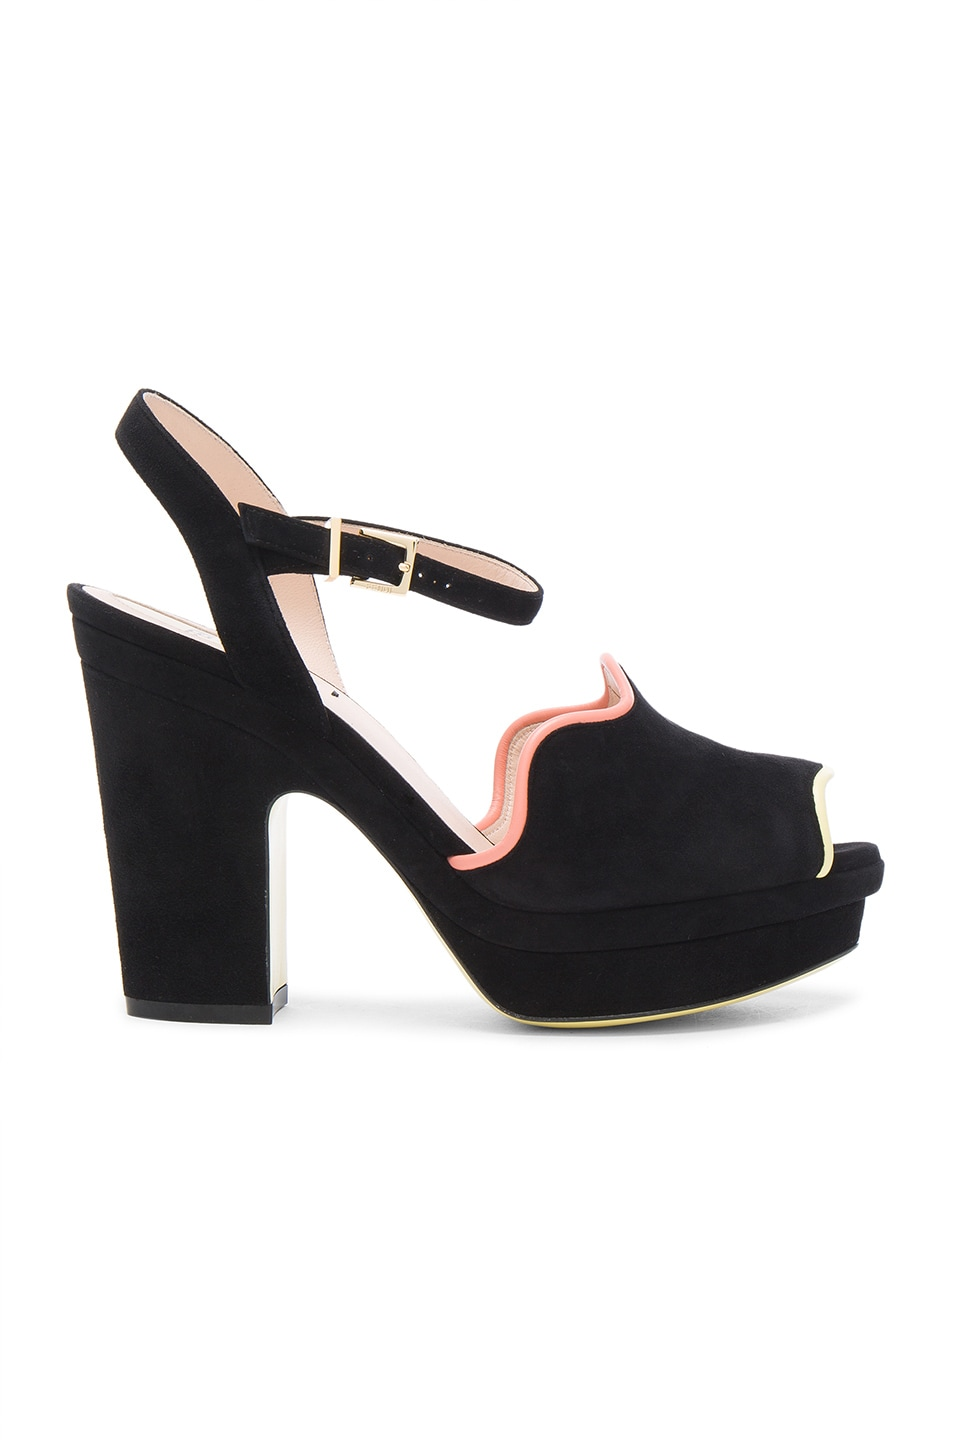 Fendi Suede Ankle Strap Heels in Black Waves | FWRD